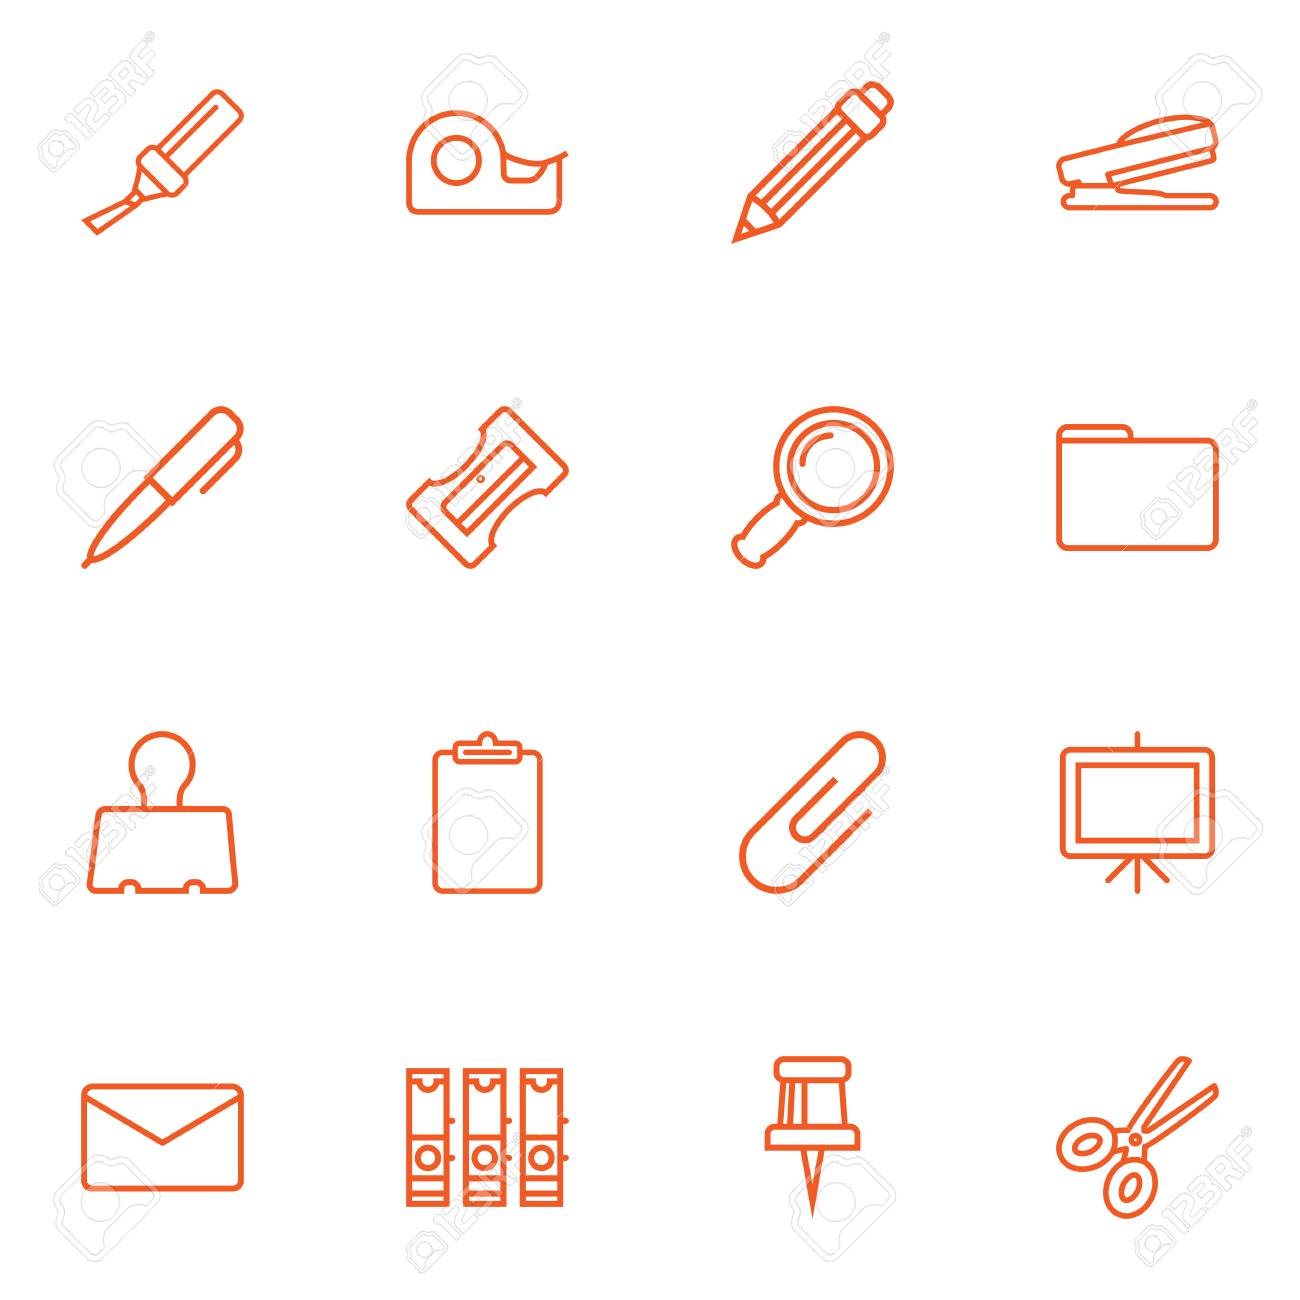 Set Of 16 Stationery Outline Icons Set Collection Of Zoom Glasses,